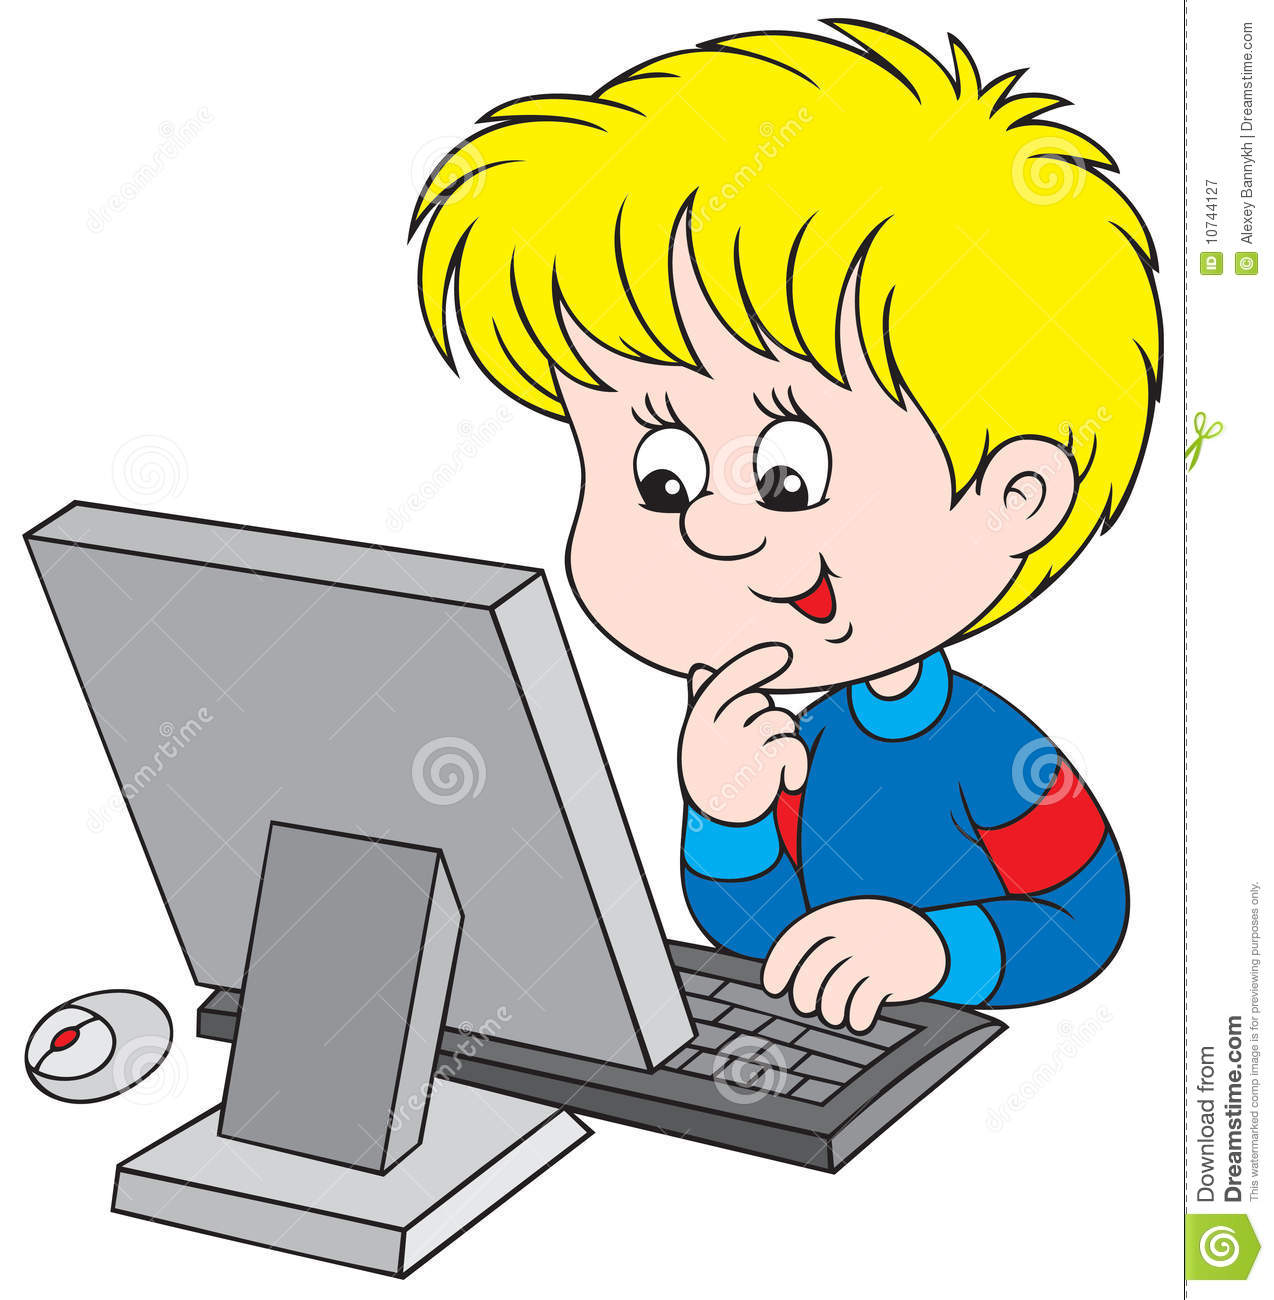 Computer clipart with kids. Clipartfest funny clip art